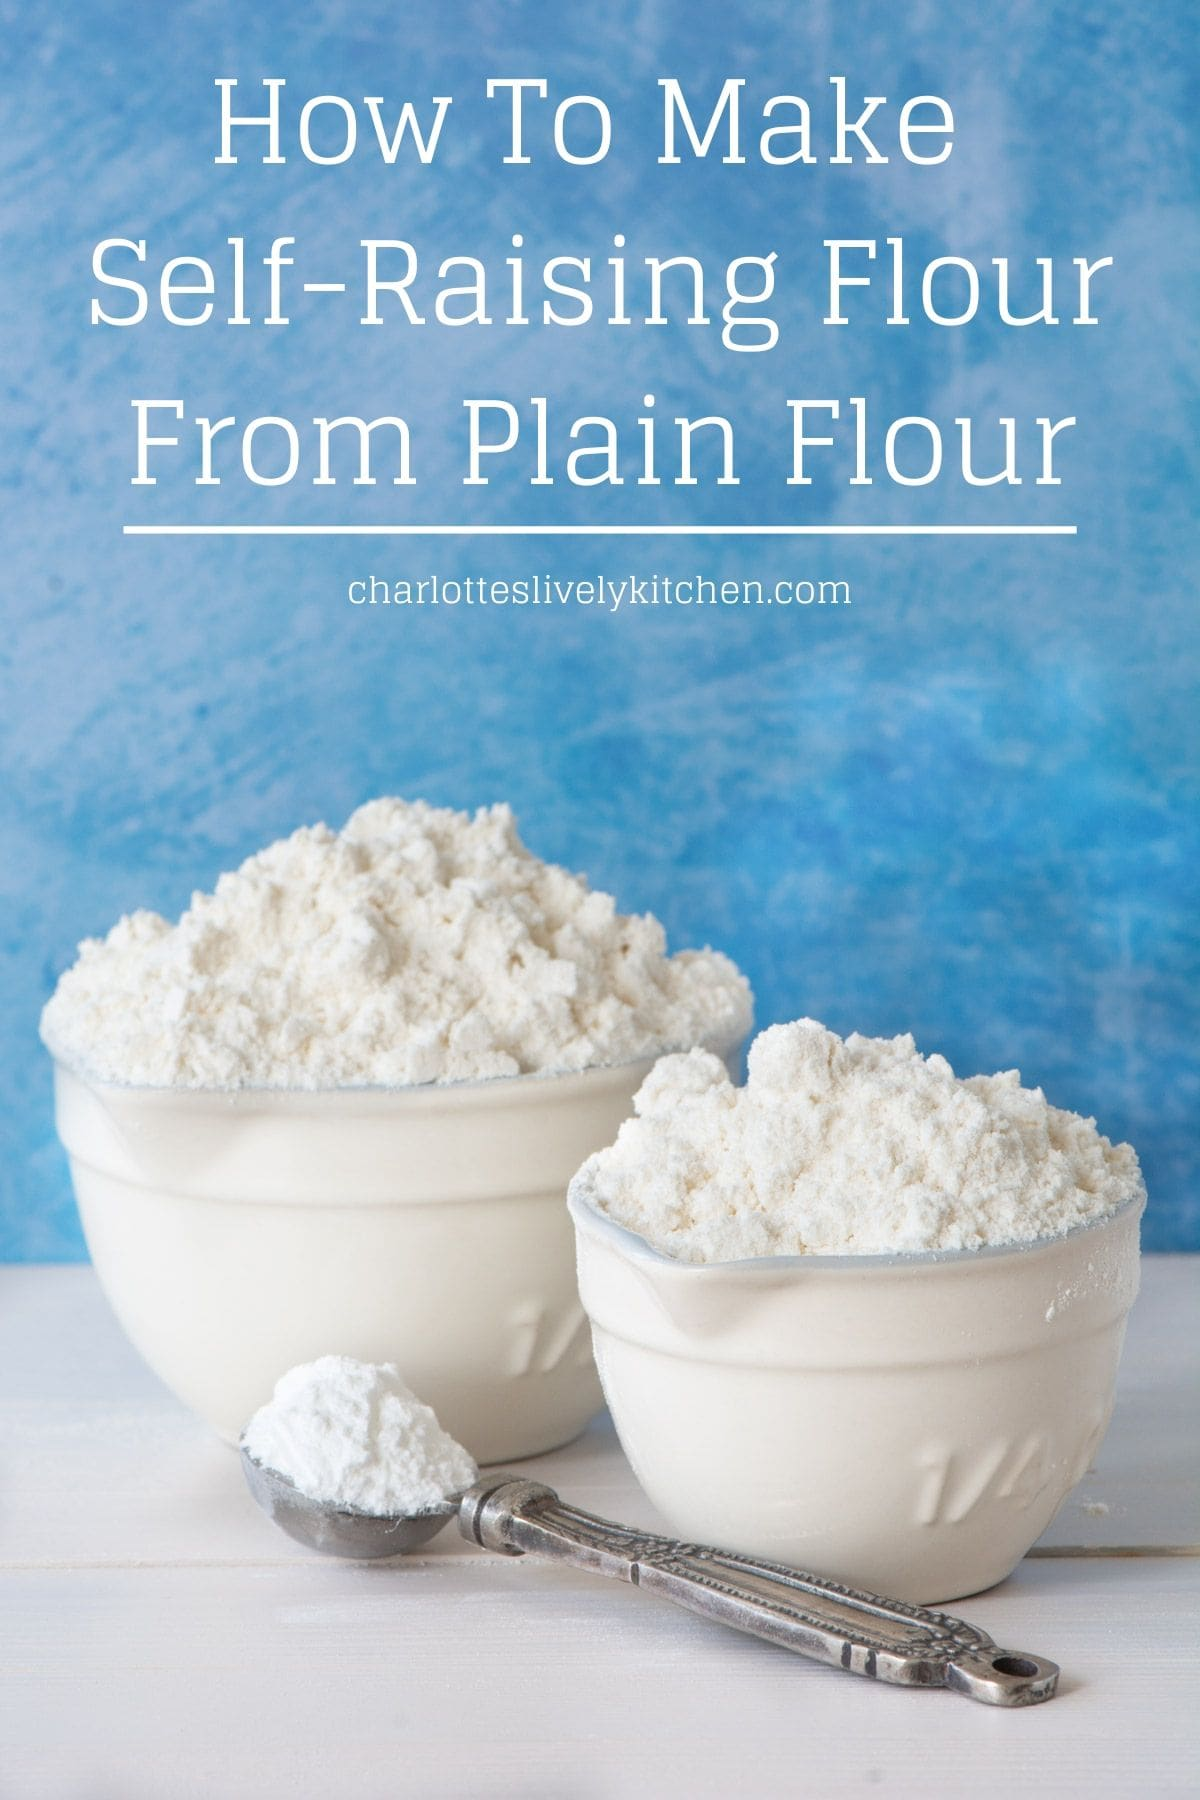 How To Make Self Raising Flour From Plain Flour Charlotte S Lively Kitchen